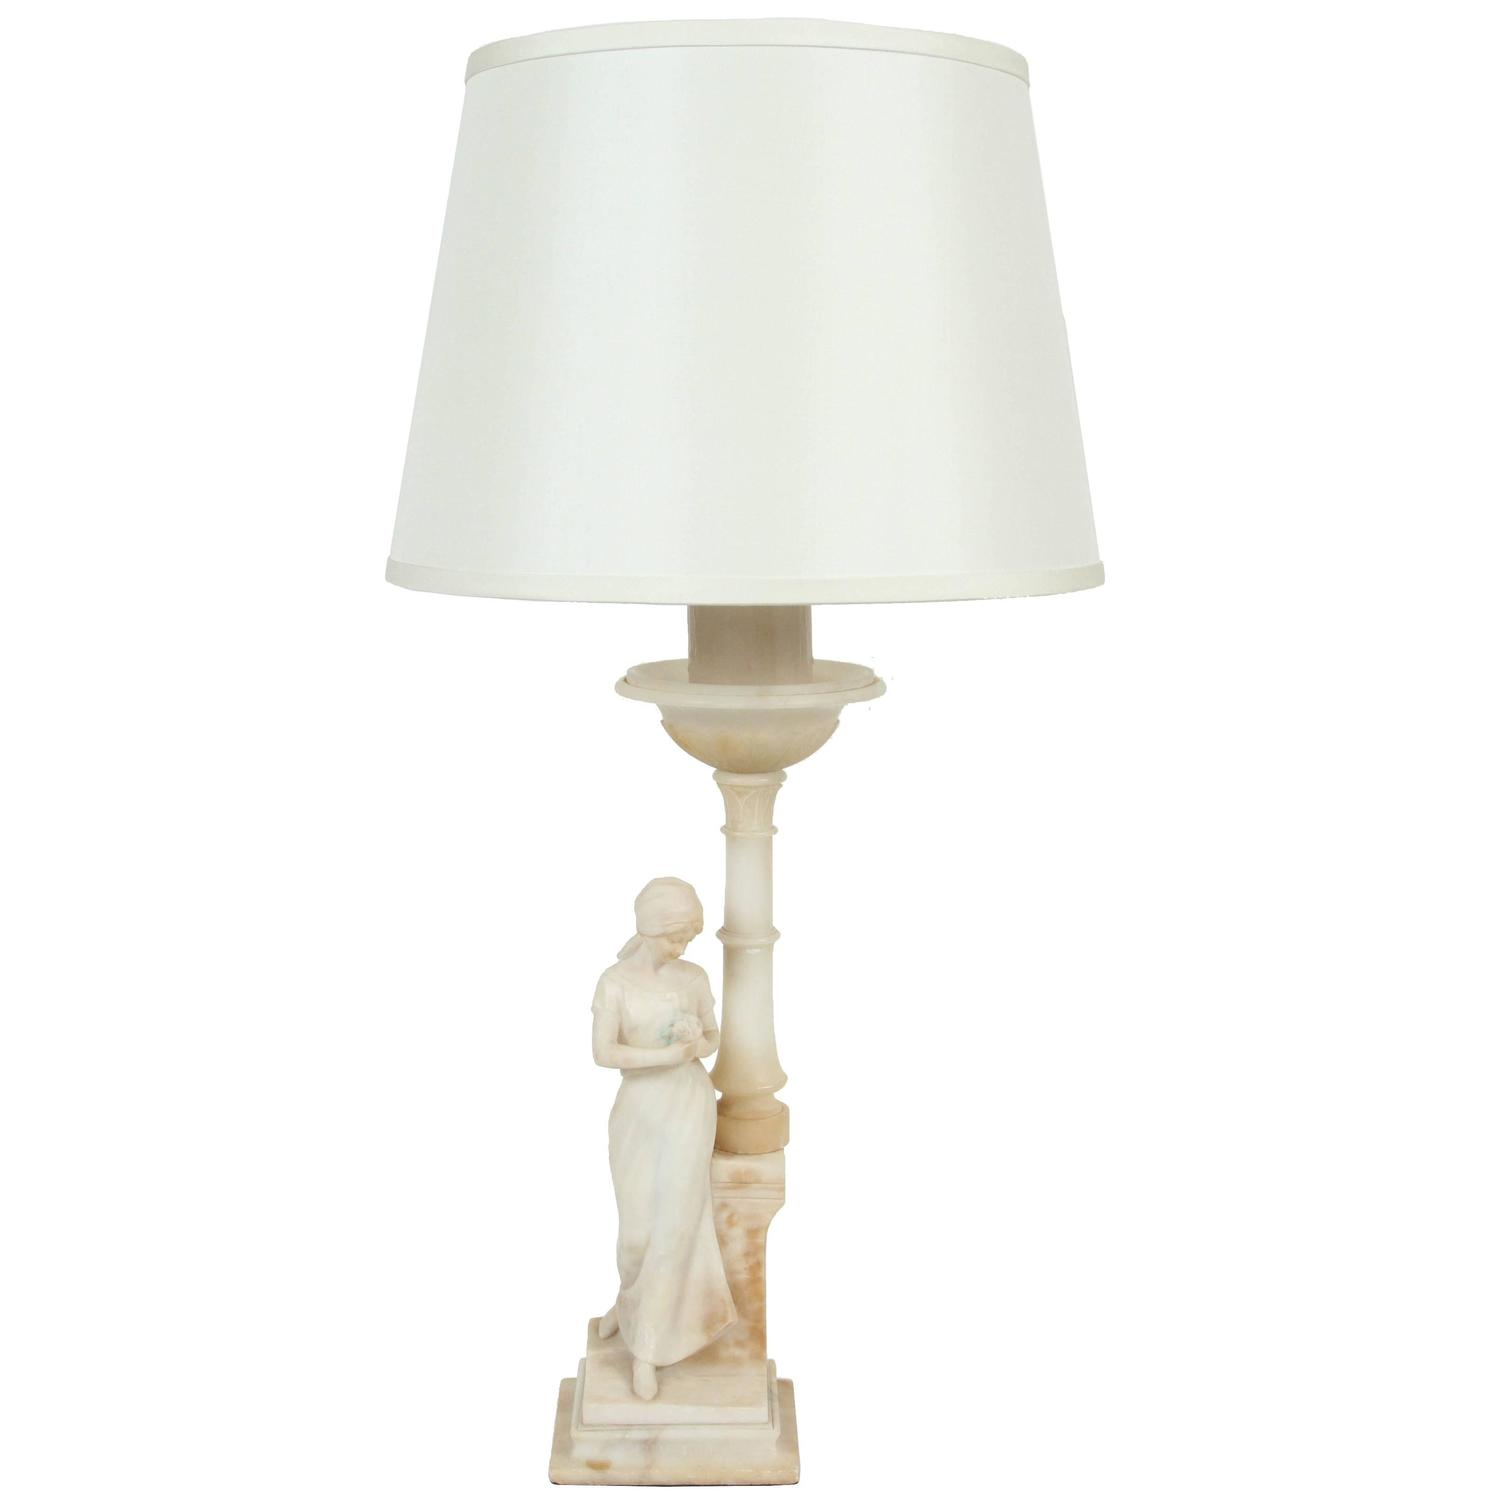 Vintage Marble Lady Figure Lamp At 1stdibs